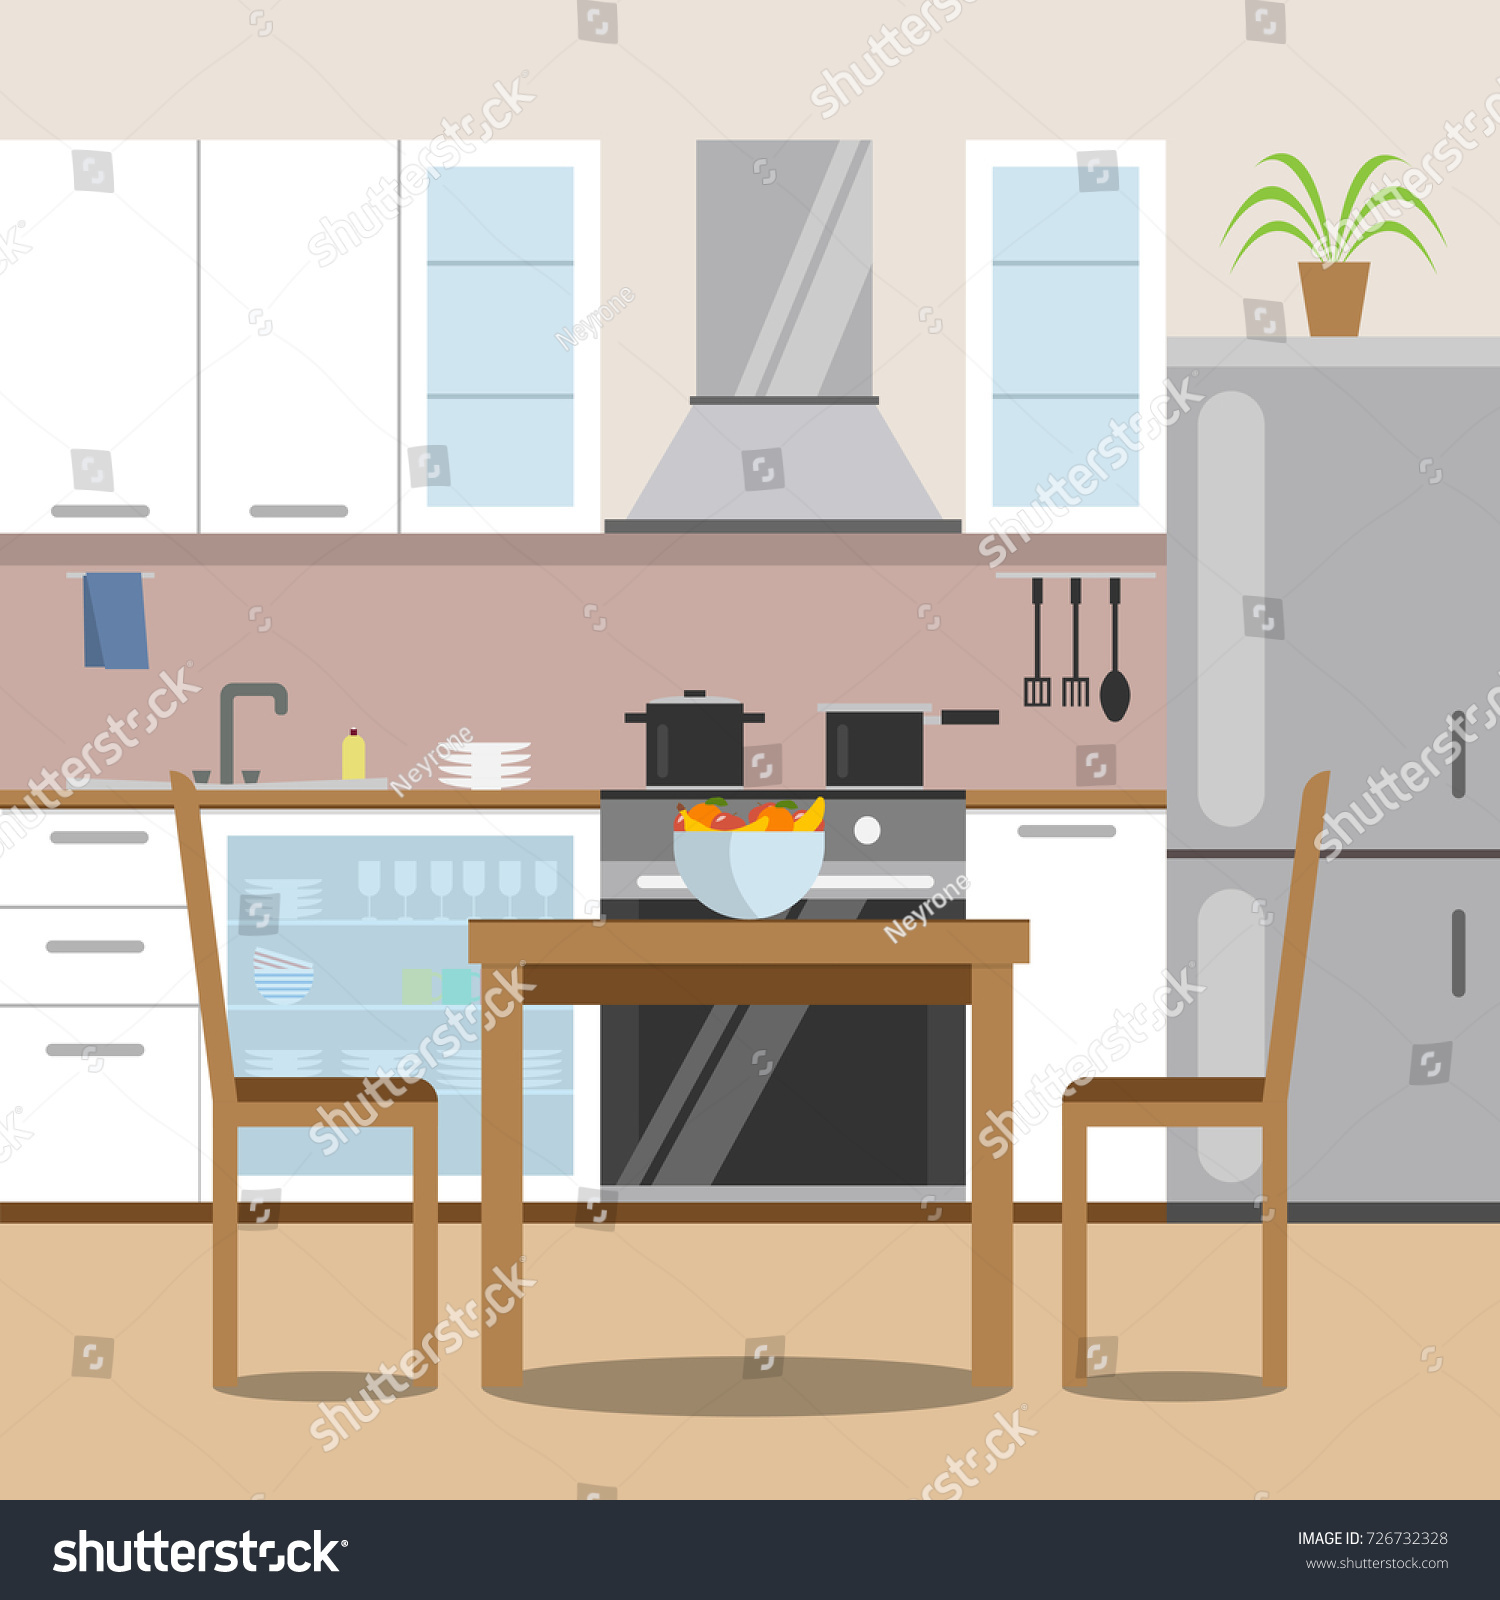 kitchen with furniture set cozy room interior with table stove cupboard and dishes